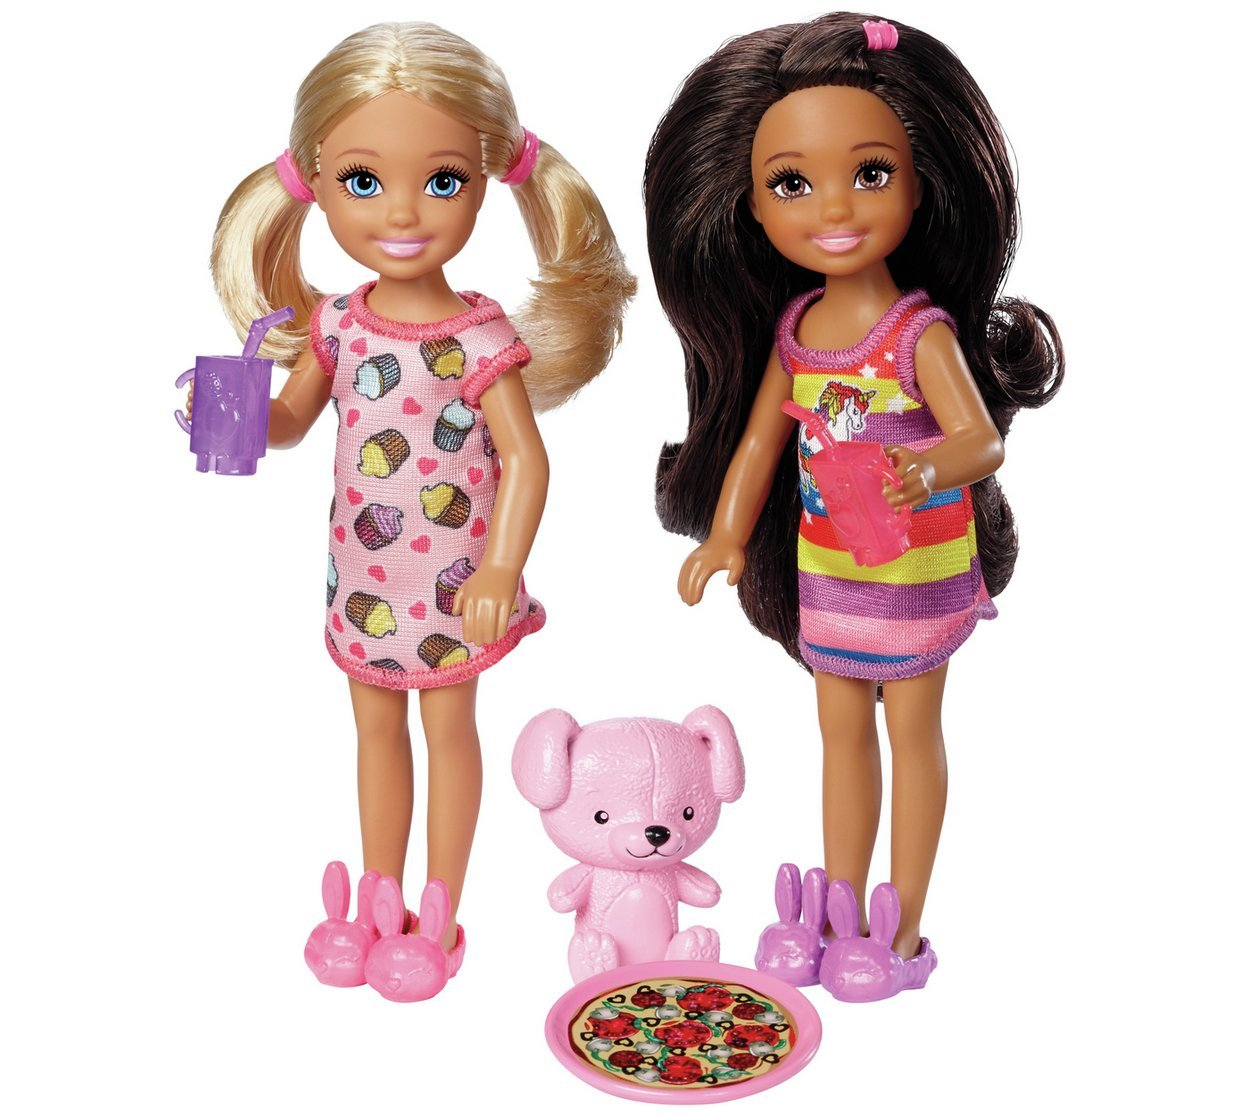 Barbie Club Chelsea 2 Pack Dolls & Accessories Assortment (Randomly 2 Dolls Supplied) (Color & Style May Vary)